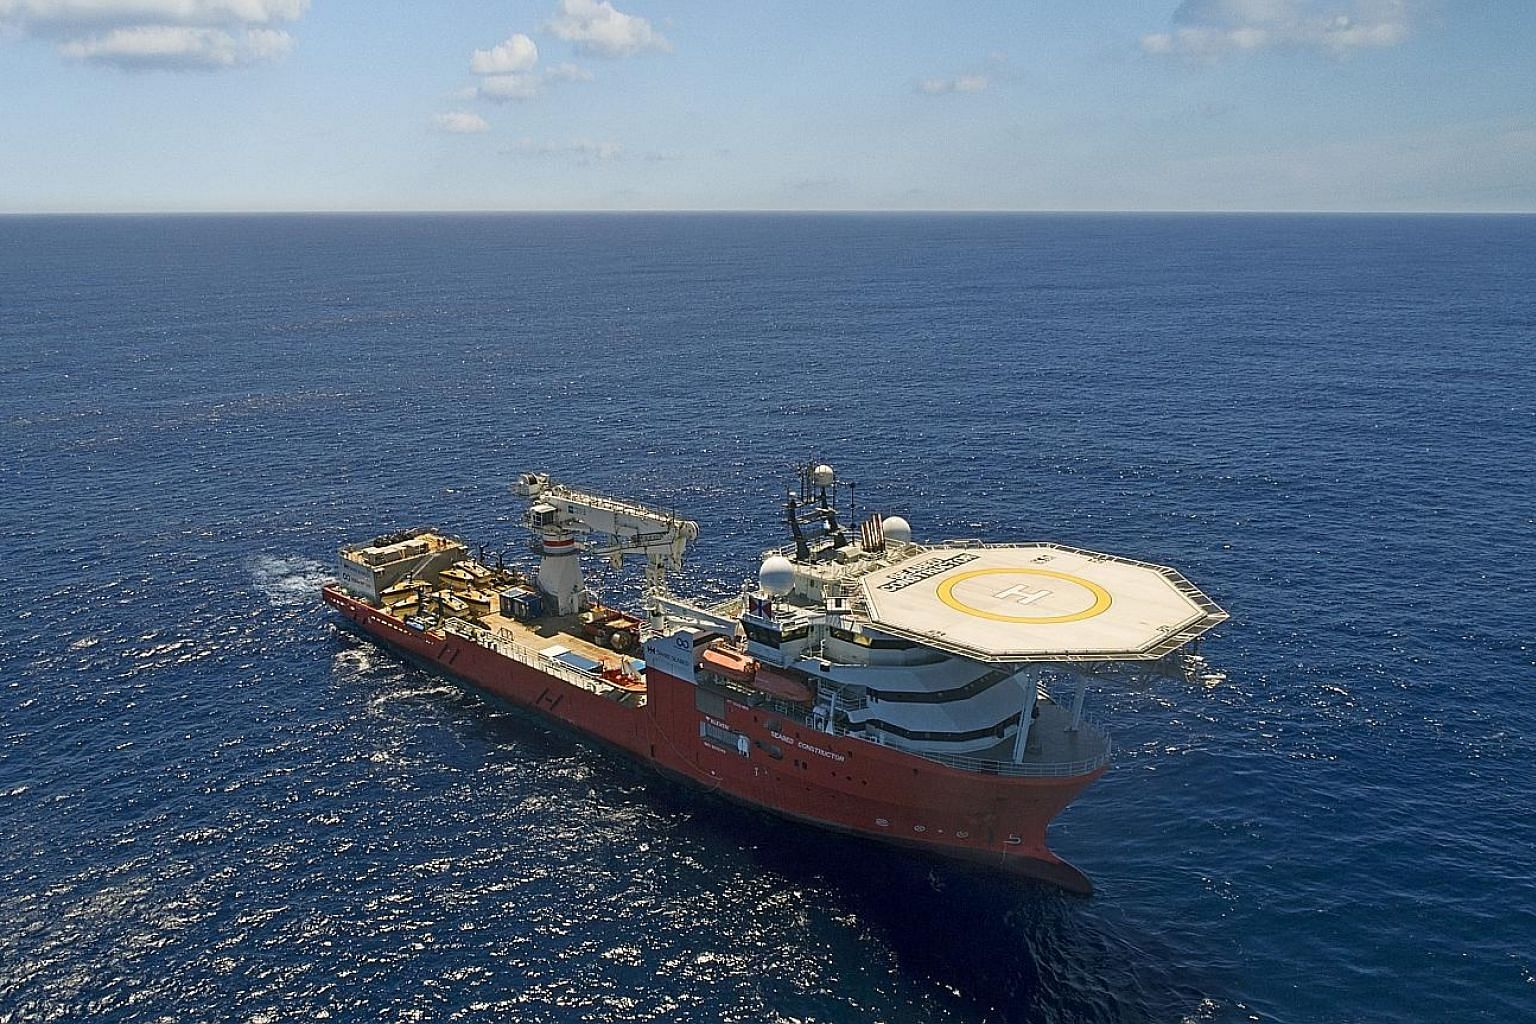 US seabed exploration firm Ocean Infinity's multi-purpose offshore vessel Seabed Constructor had been scouring the southern Indian Ocean for the missing Malaysia Airlines aircraft since January, covering more than 112,000 sq km of ocean floor in a li